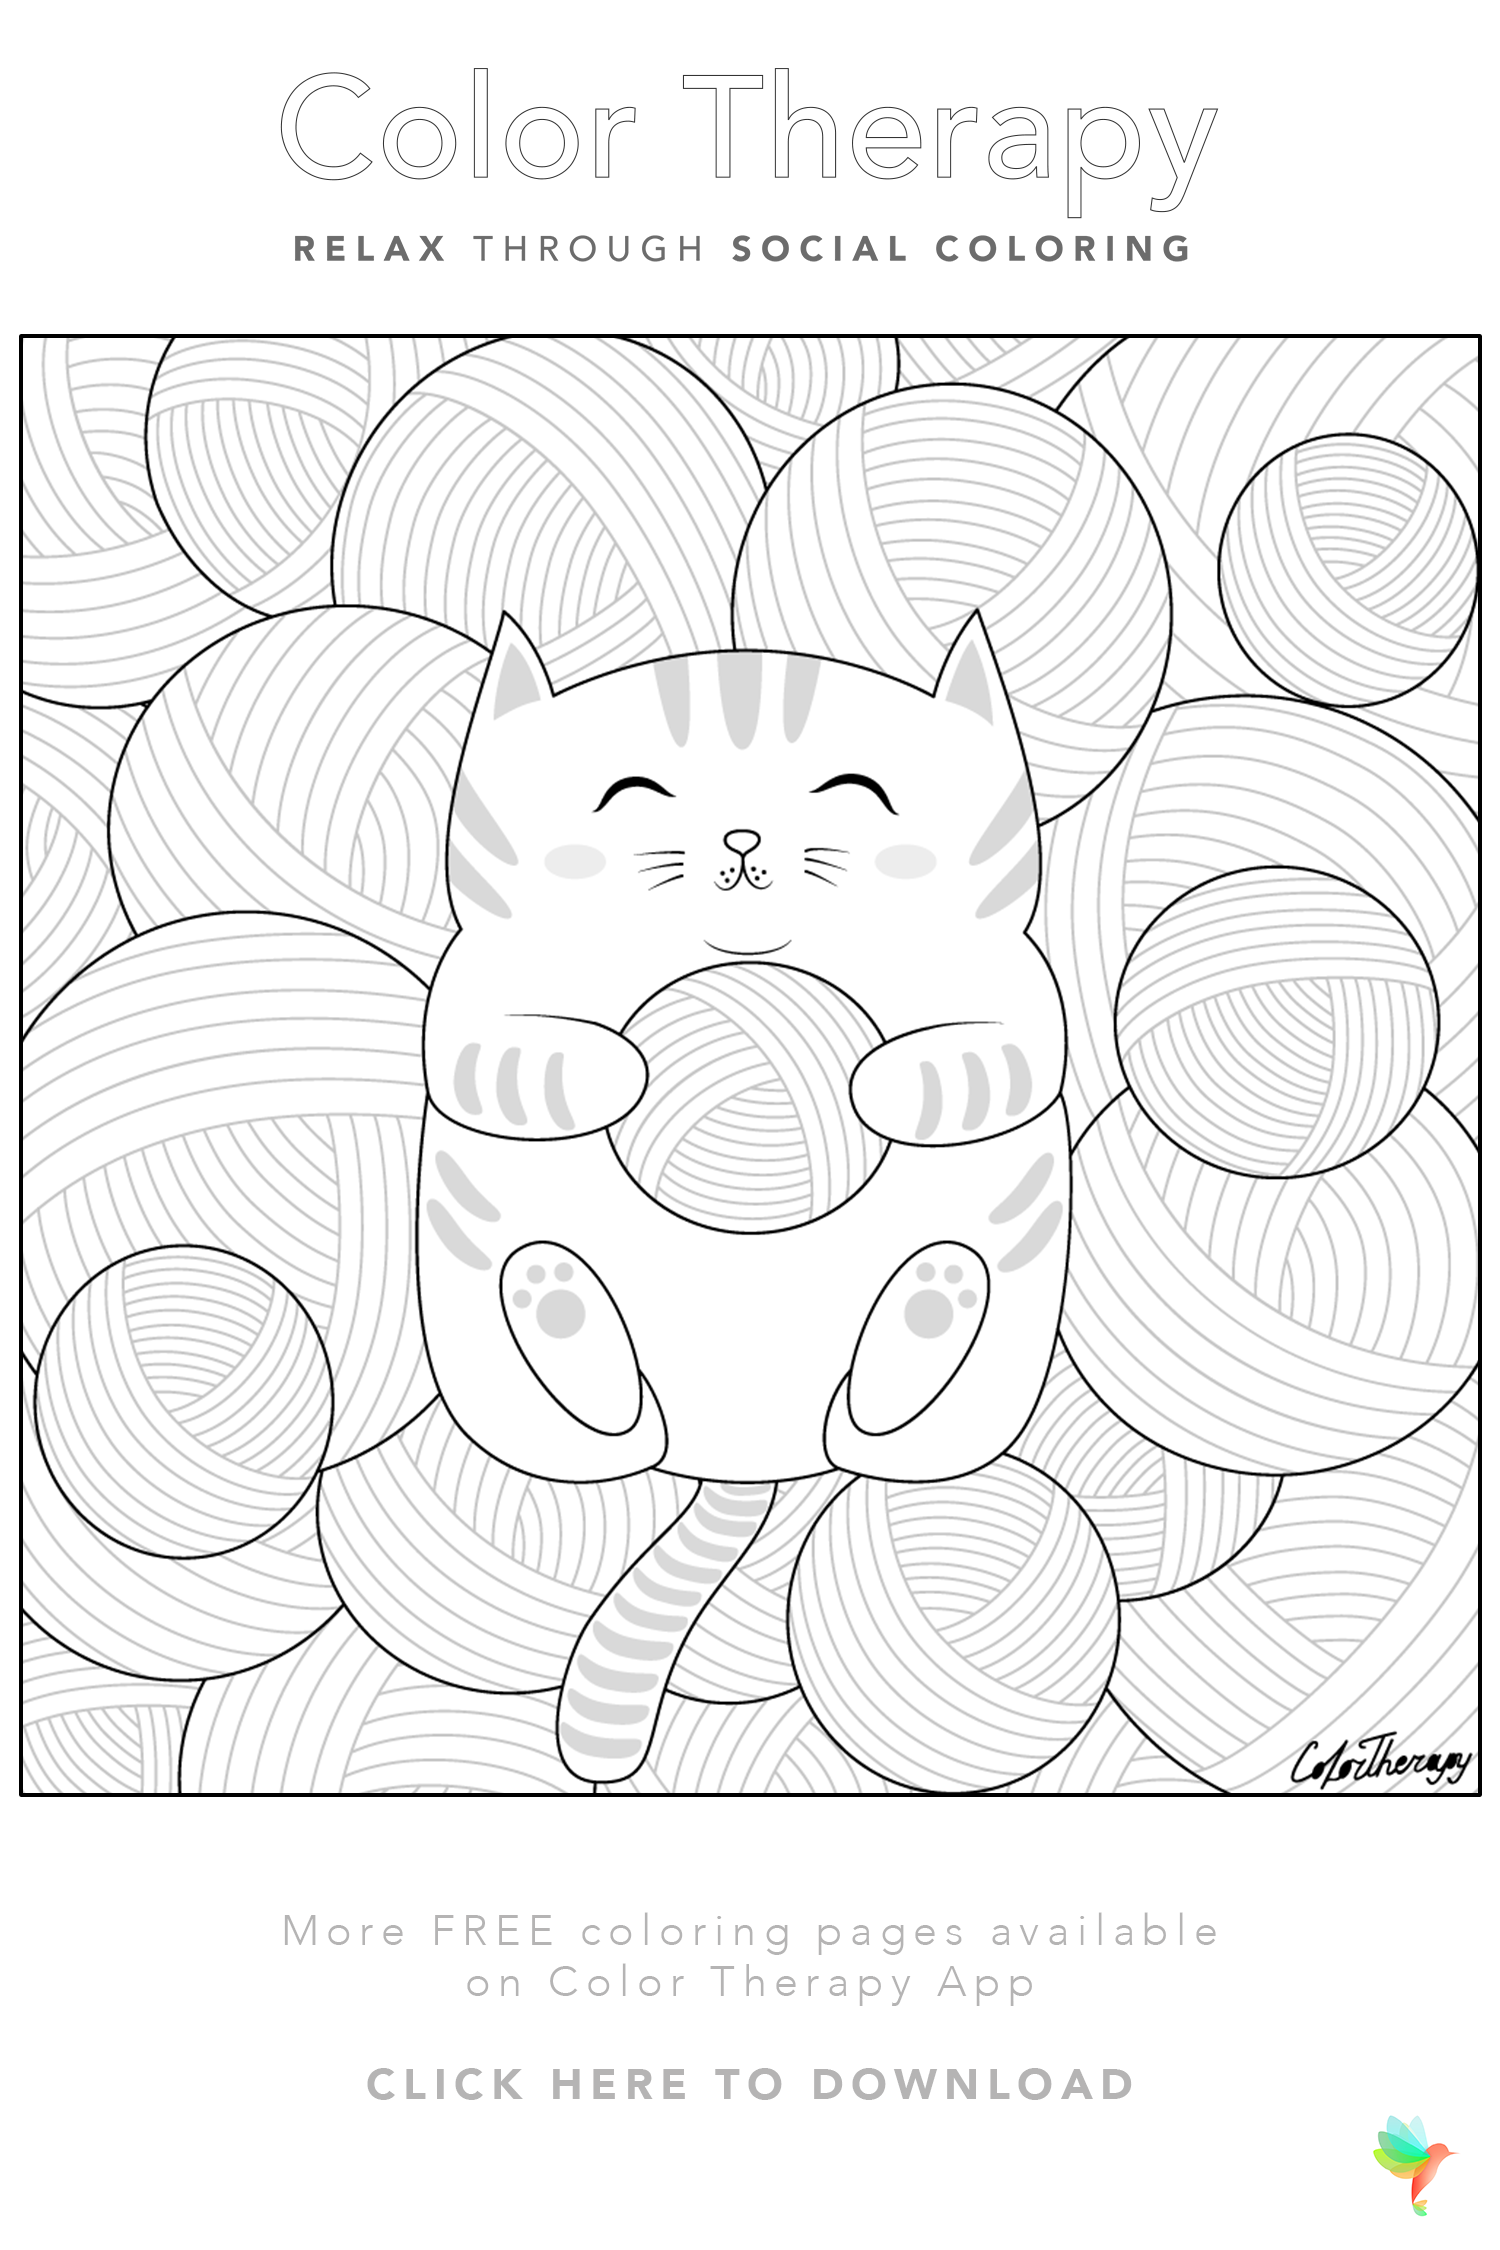 Color Therapy Gift Of The Day Free Coloring Template Coloring Book Art Cool Coloring Pages Color Therapy